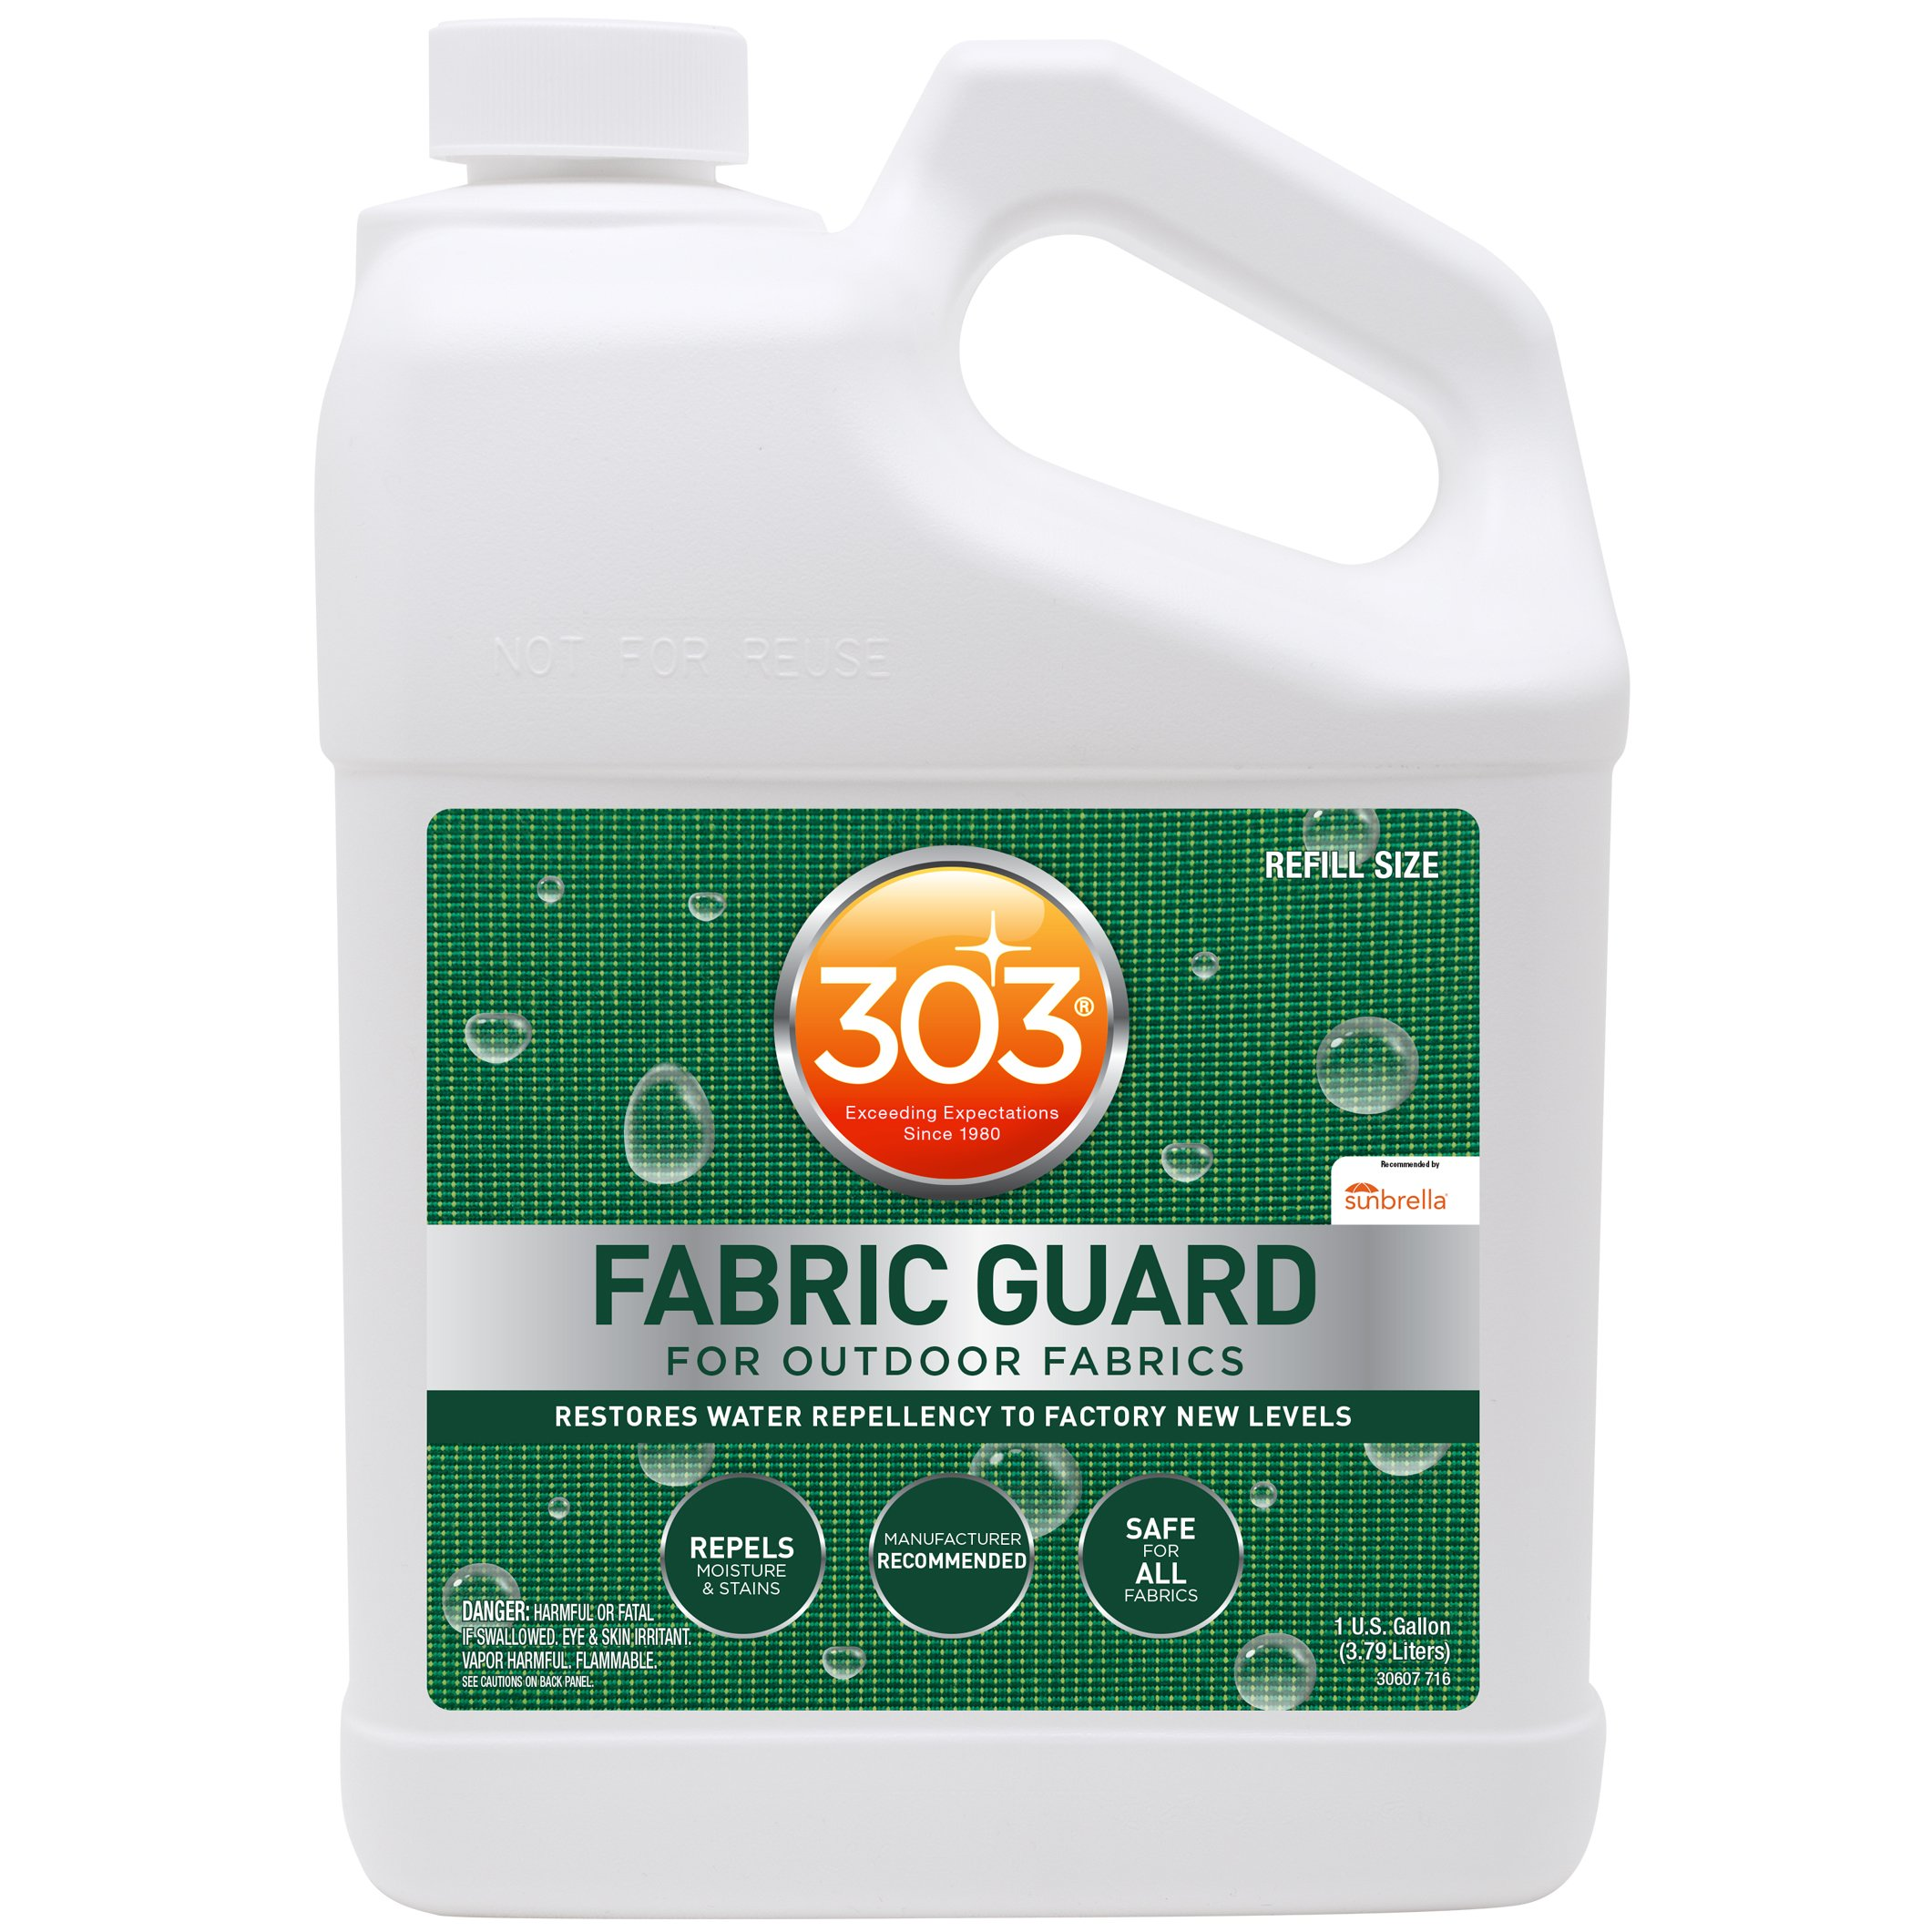 303 Fabric Guard - For Outdoor Fabrics - Restores Water Repellency To Factory New Levels - Repels Moisture And Stains - Manufacturer Recommended - Safe For All Fabrics, 128 fl. oz. (30607)